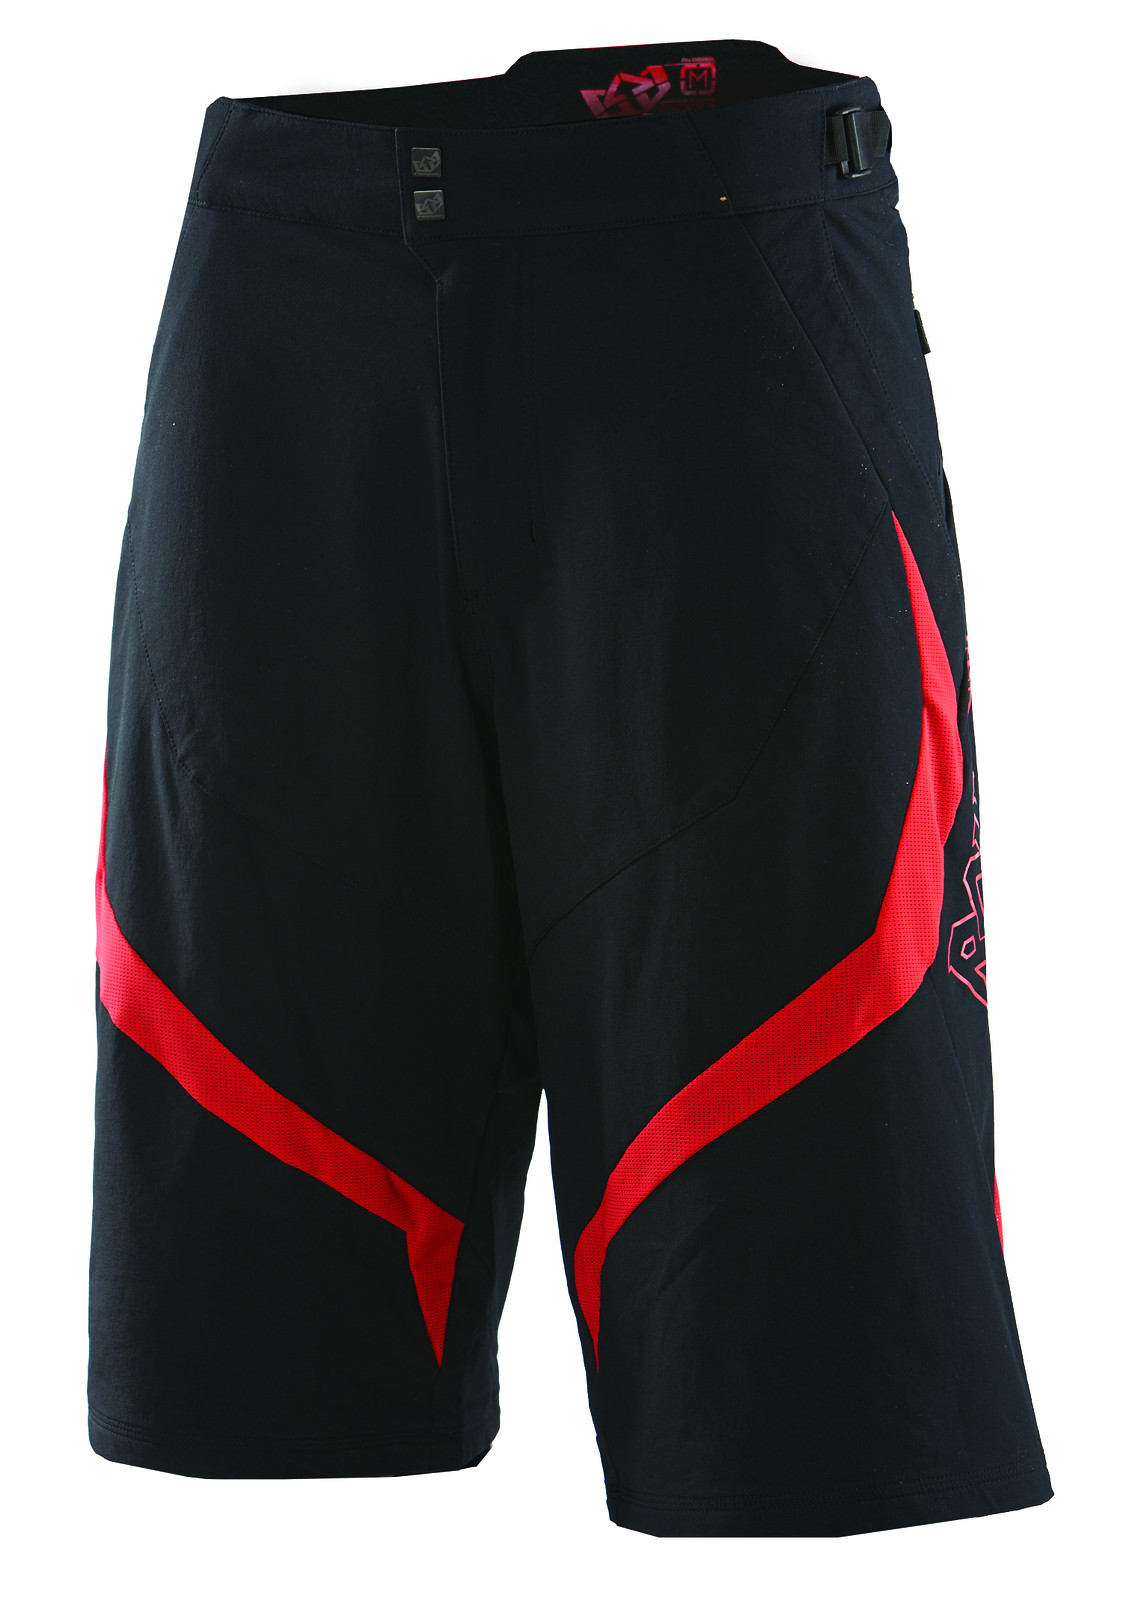 turbulance short black red f